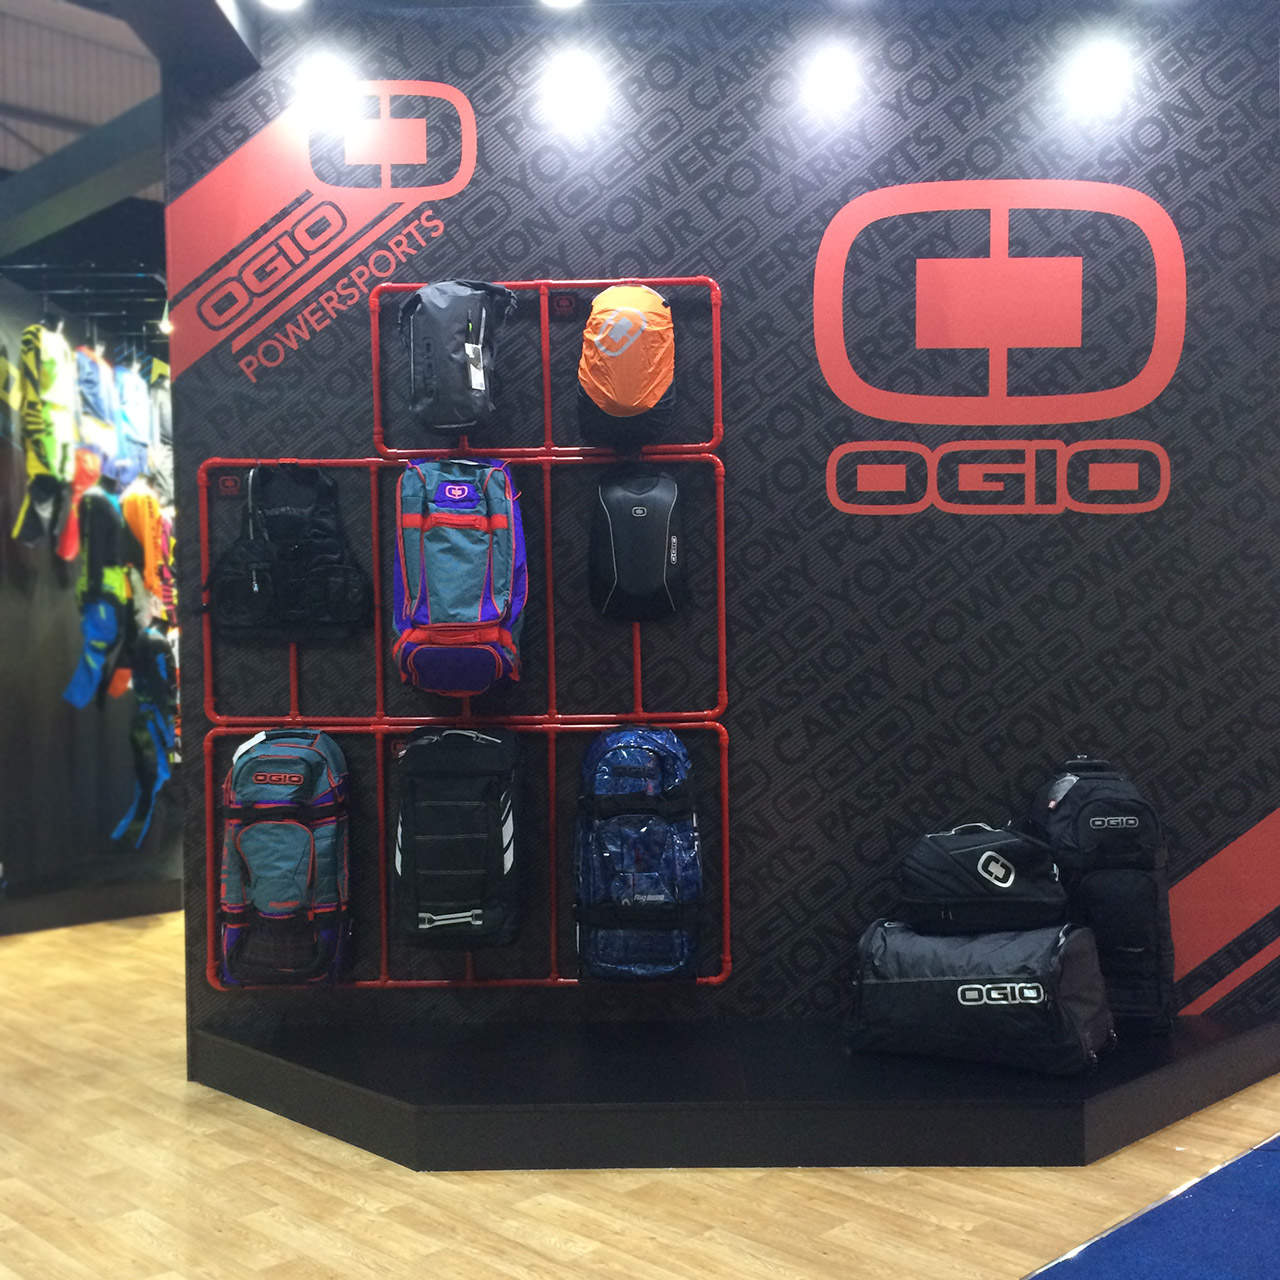 Dirt Bike Show UK - OGIO Stand